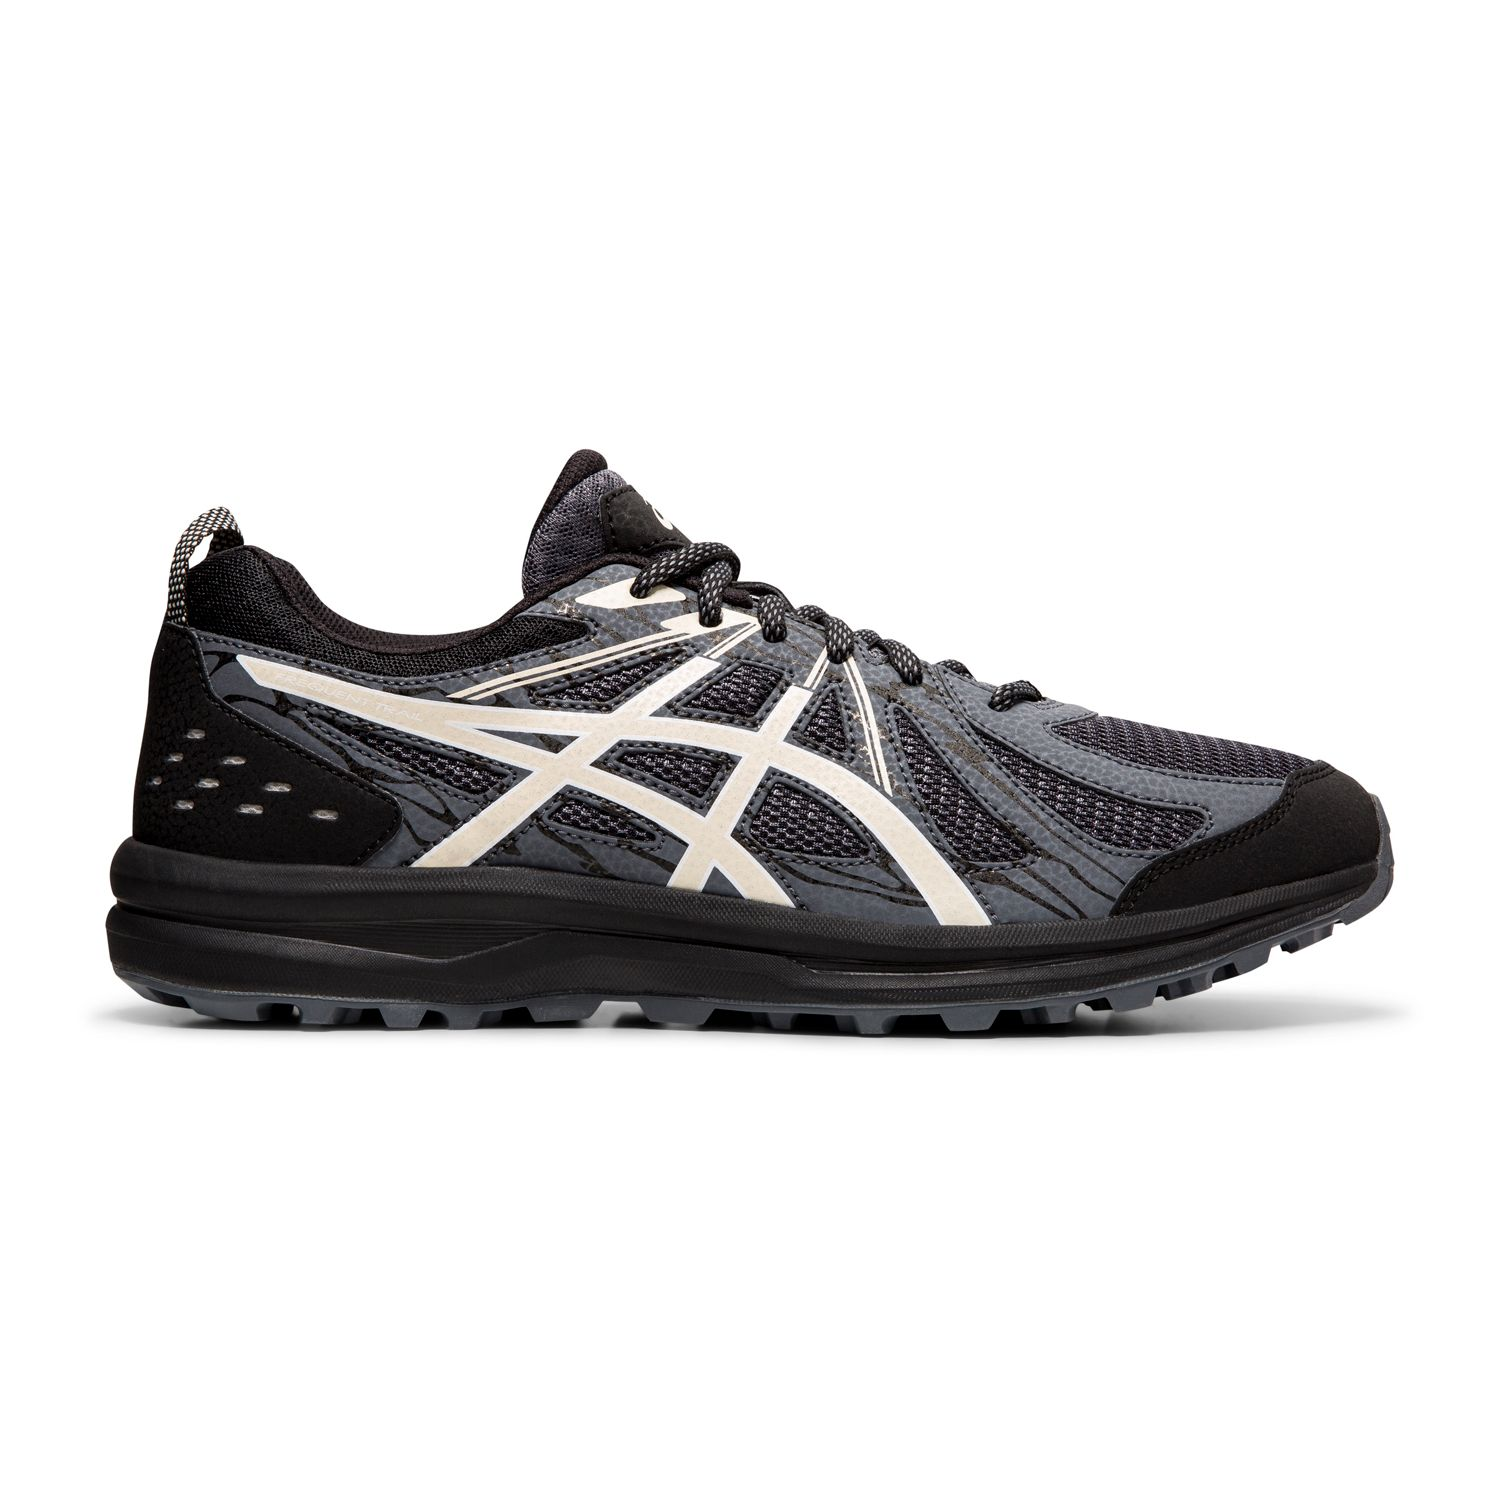 asics frequent xt trail review Cheaper Than Retail Price> Buy ...